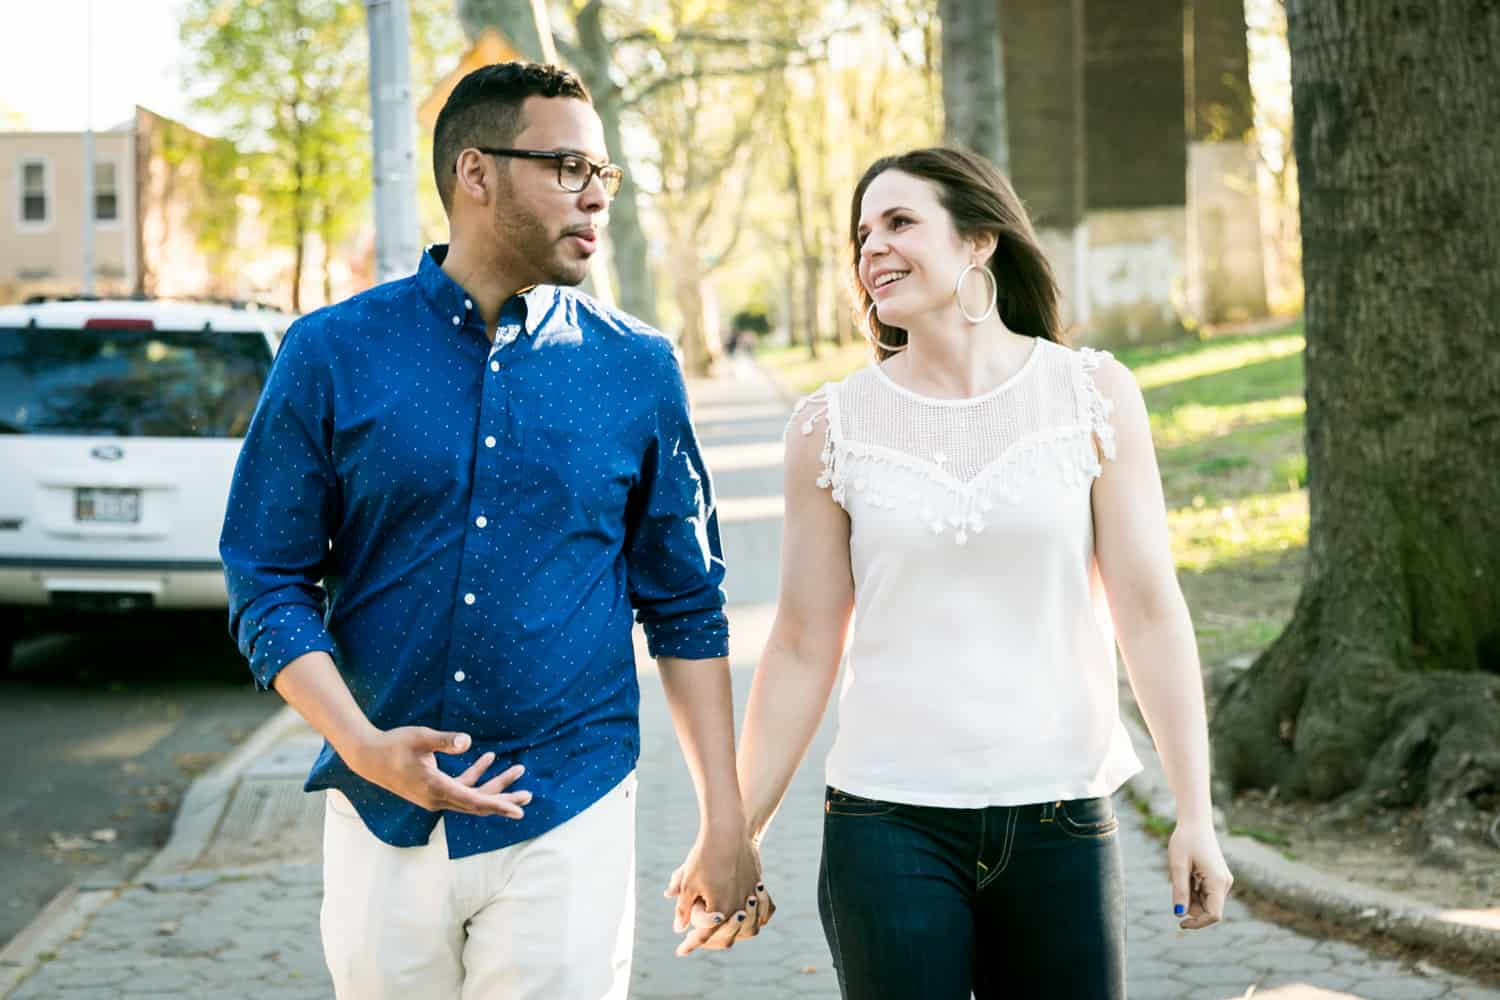 Couple walking hand-in-hand during an Astoria Park engagement shoot